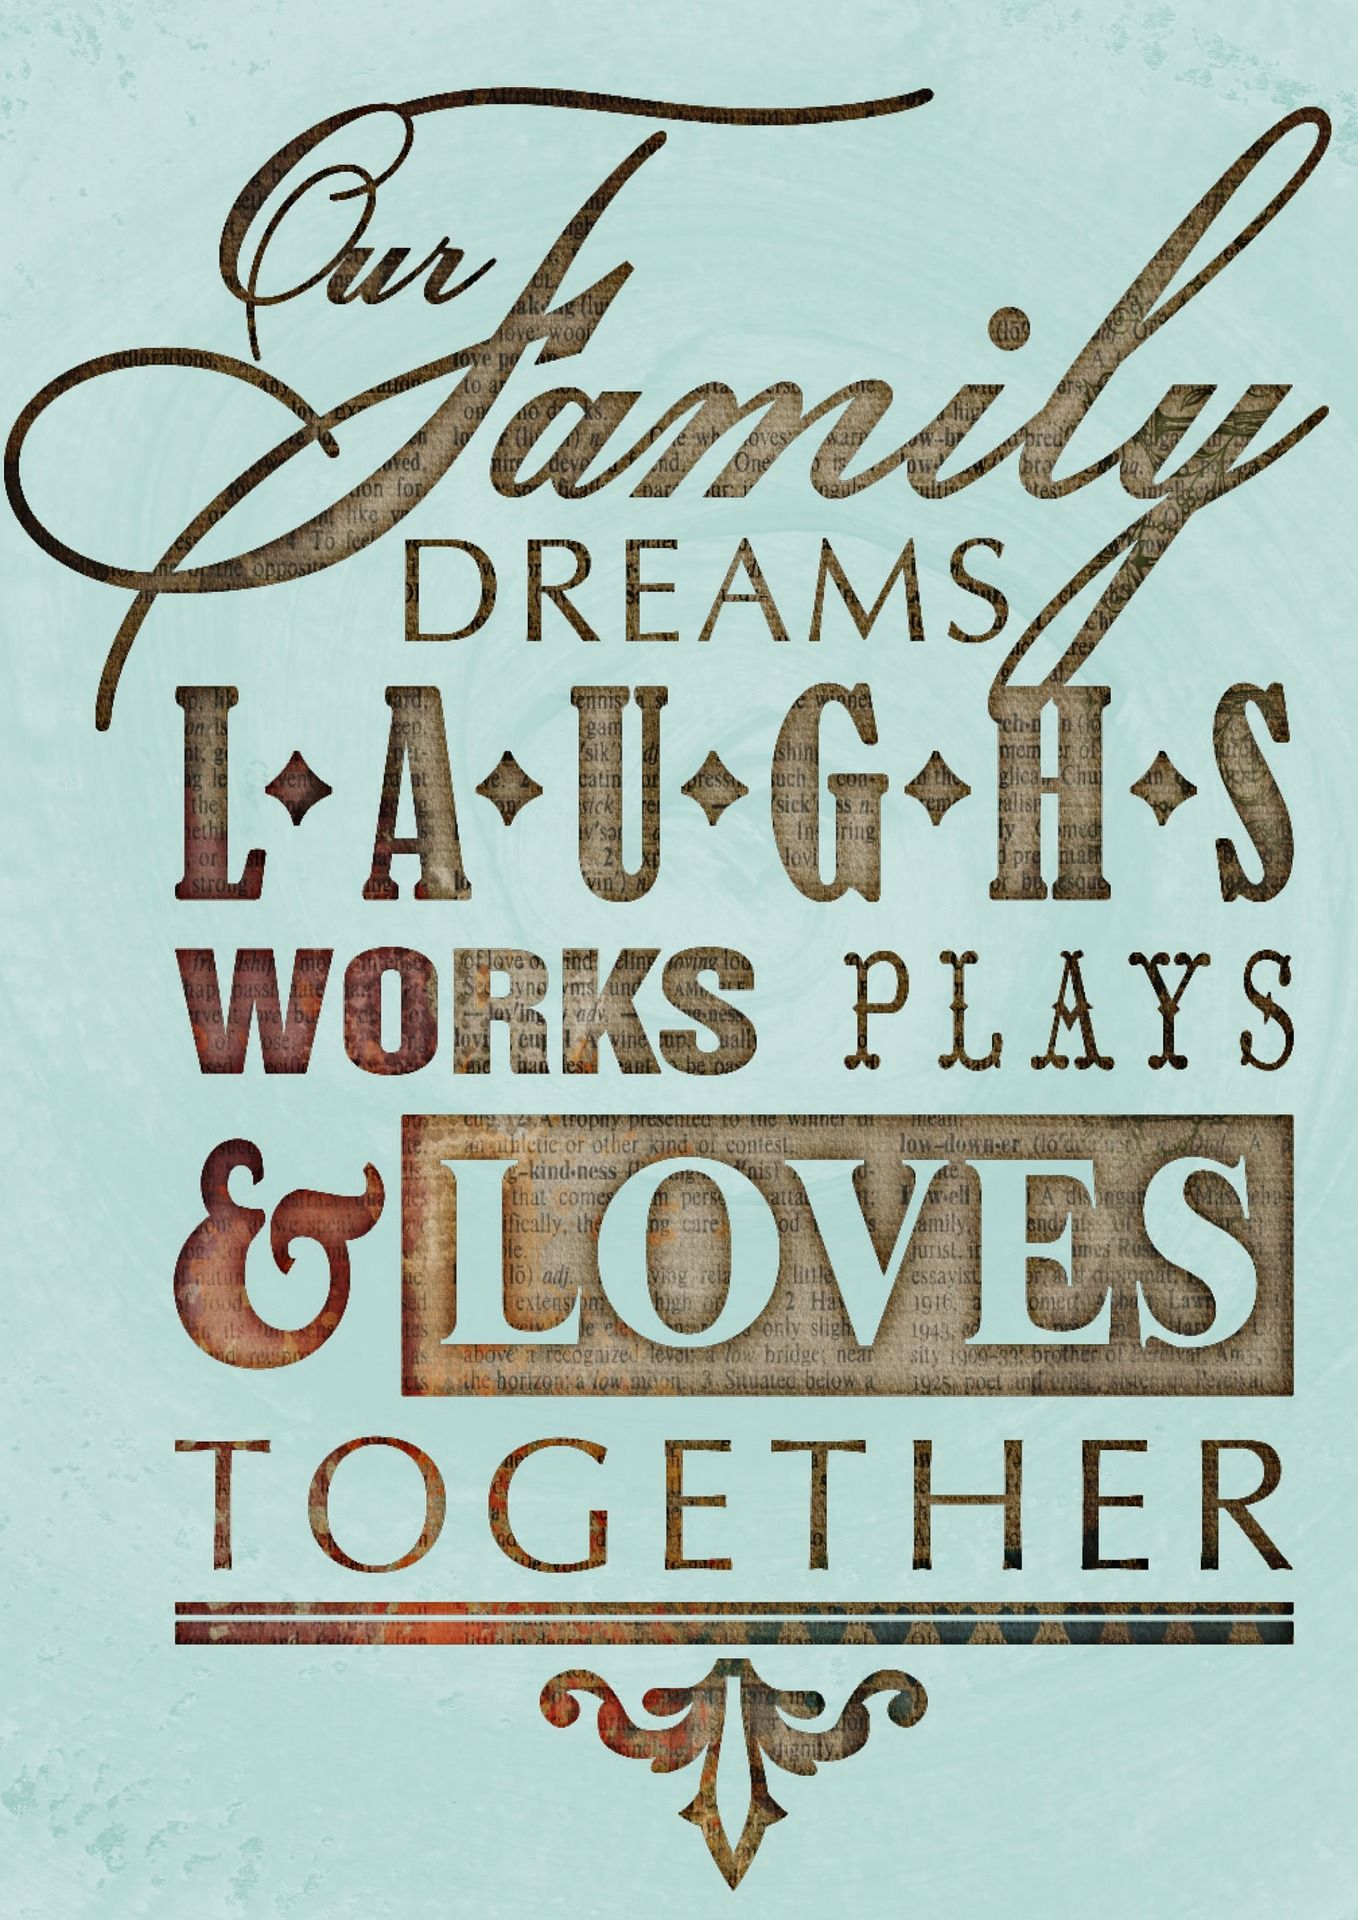 family games, family playing together, board games for family fun, christmas board game ideas